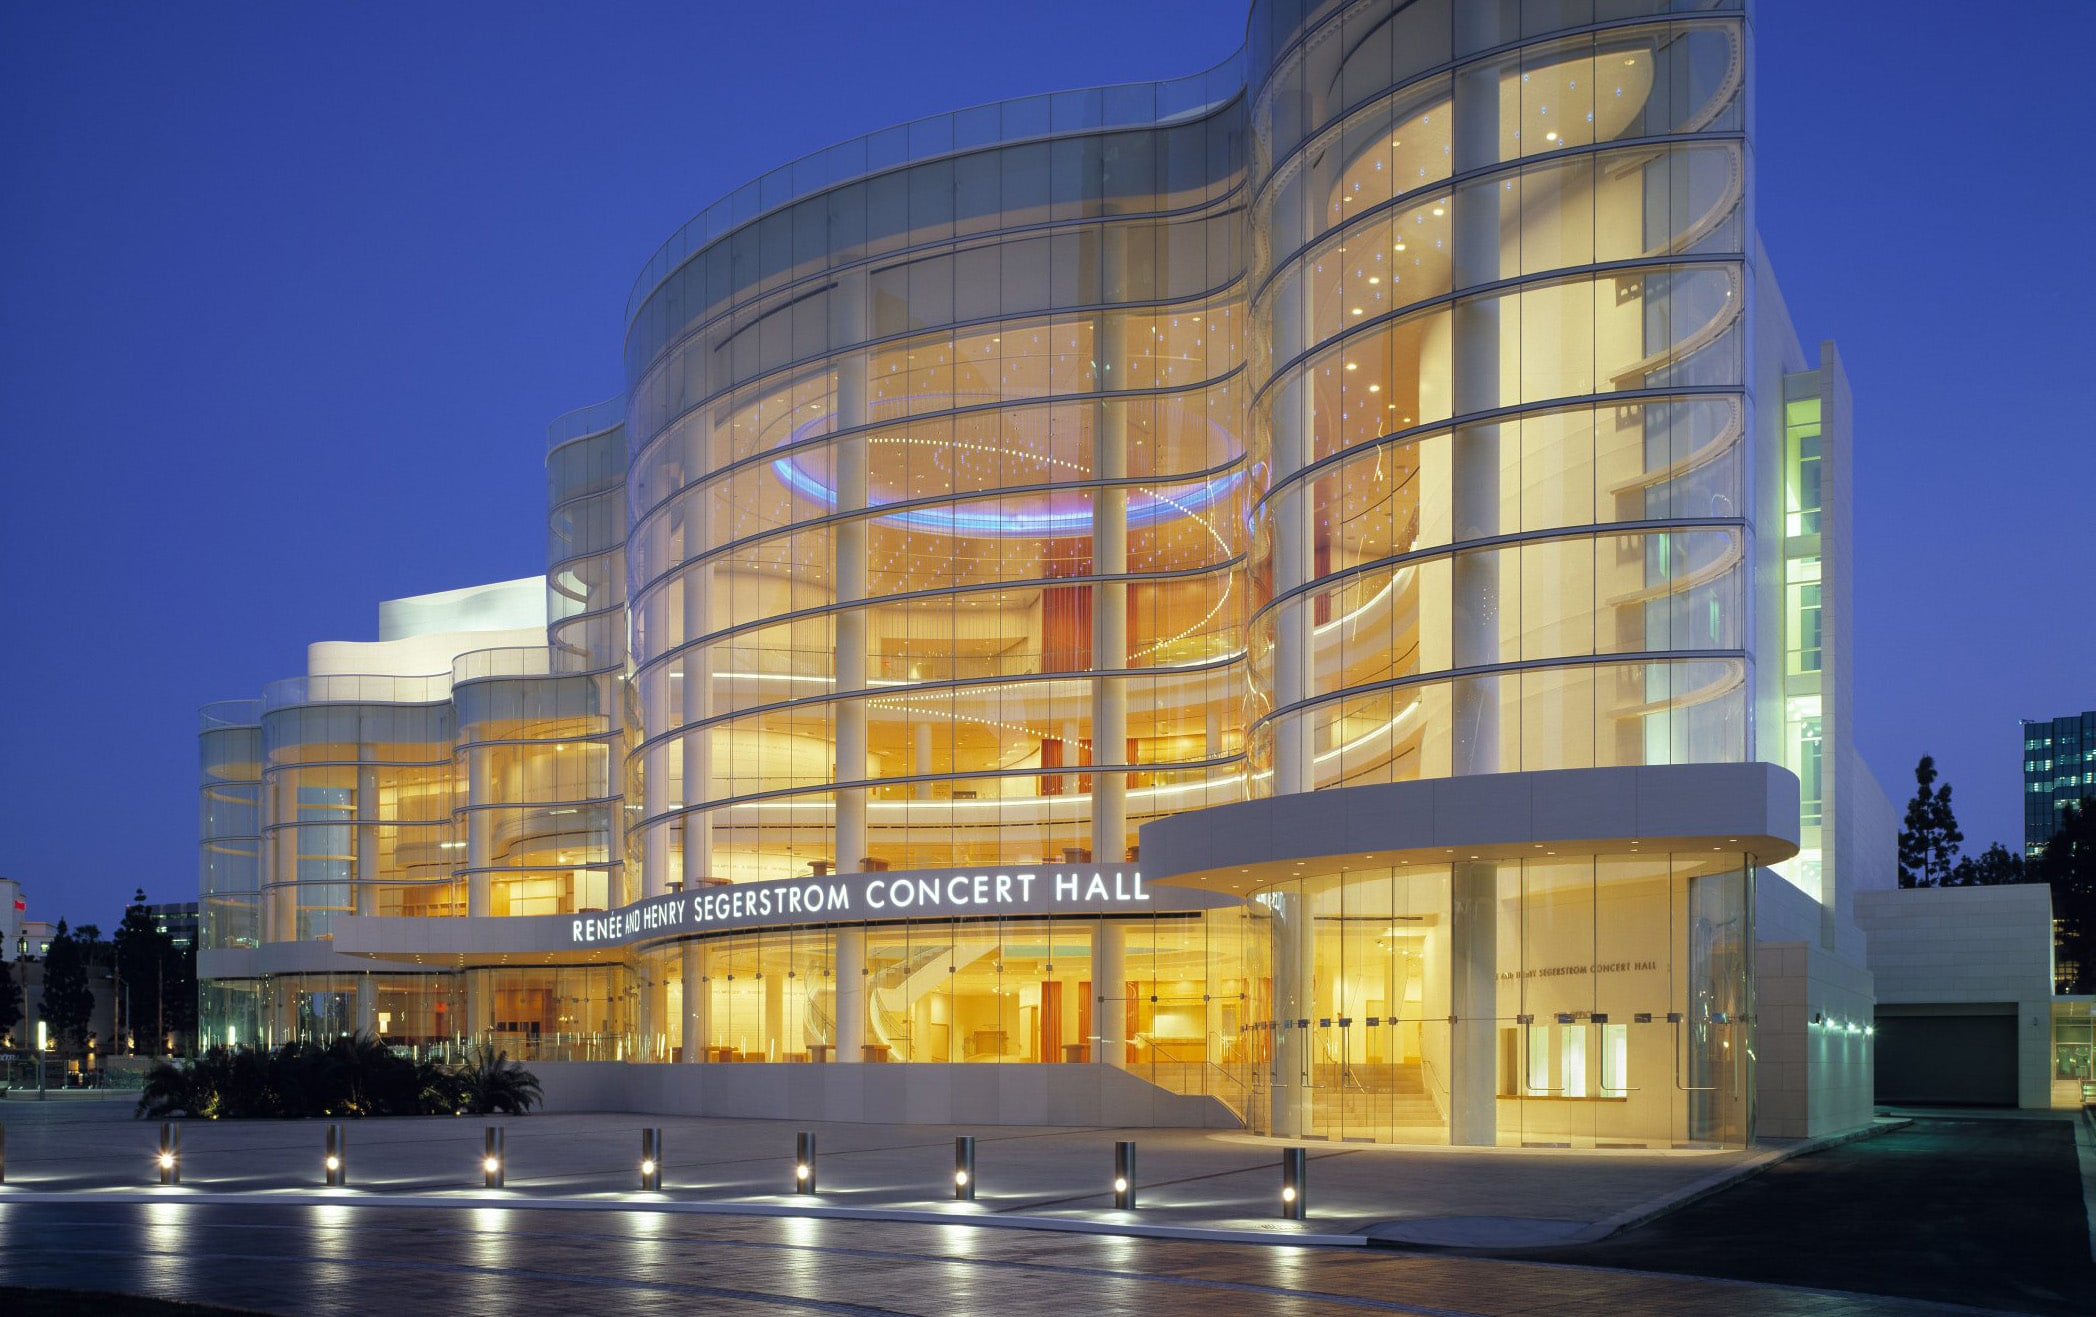 Picture of Segerstrom Concert Hall at night